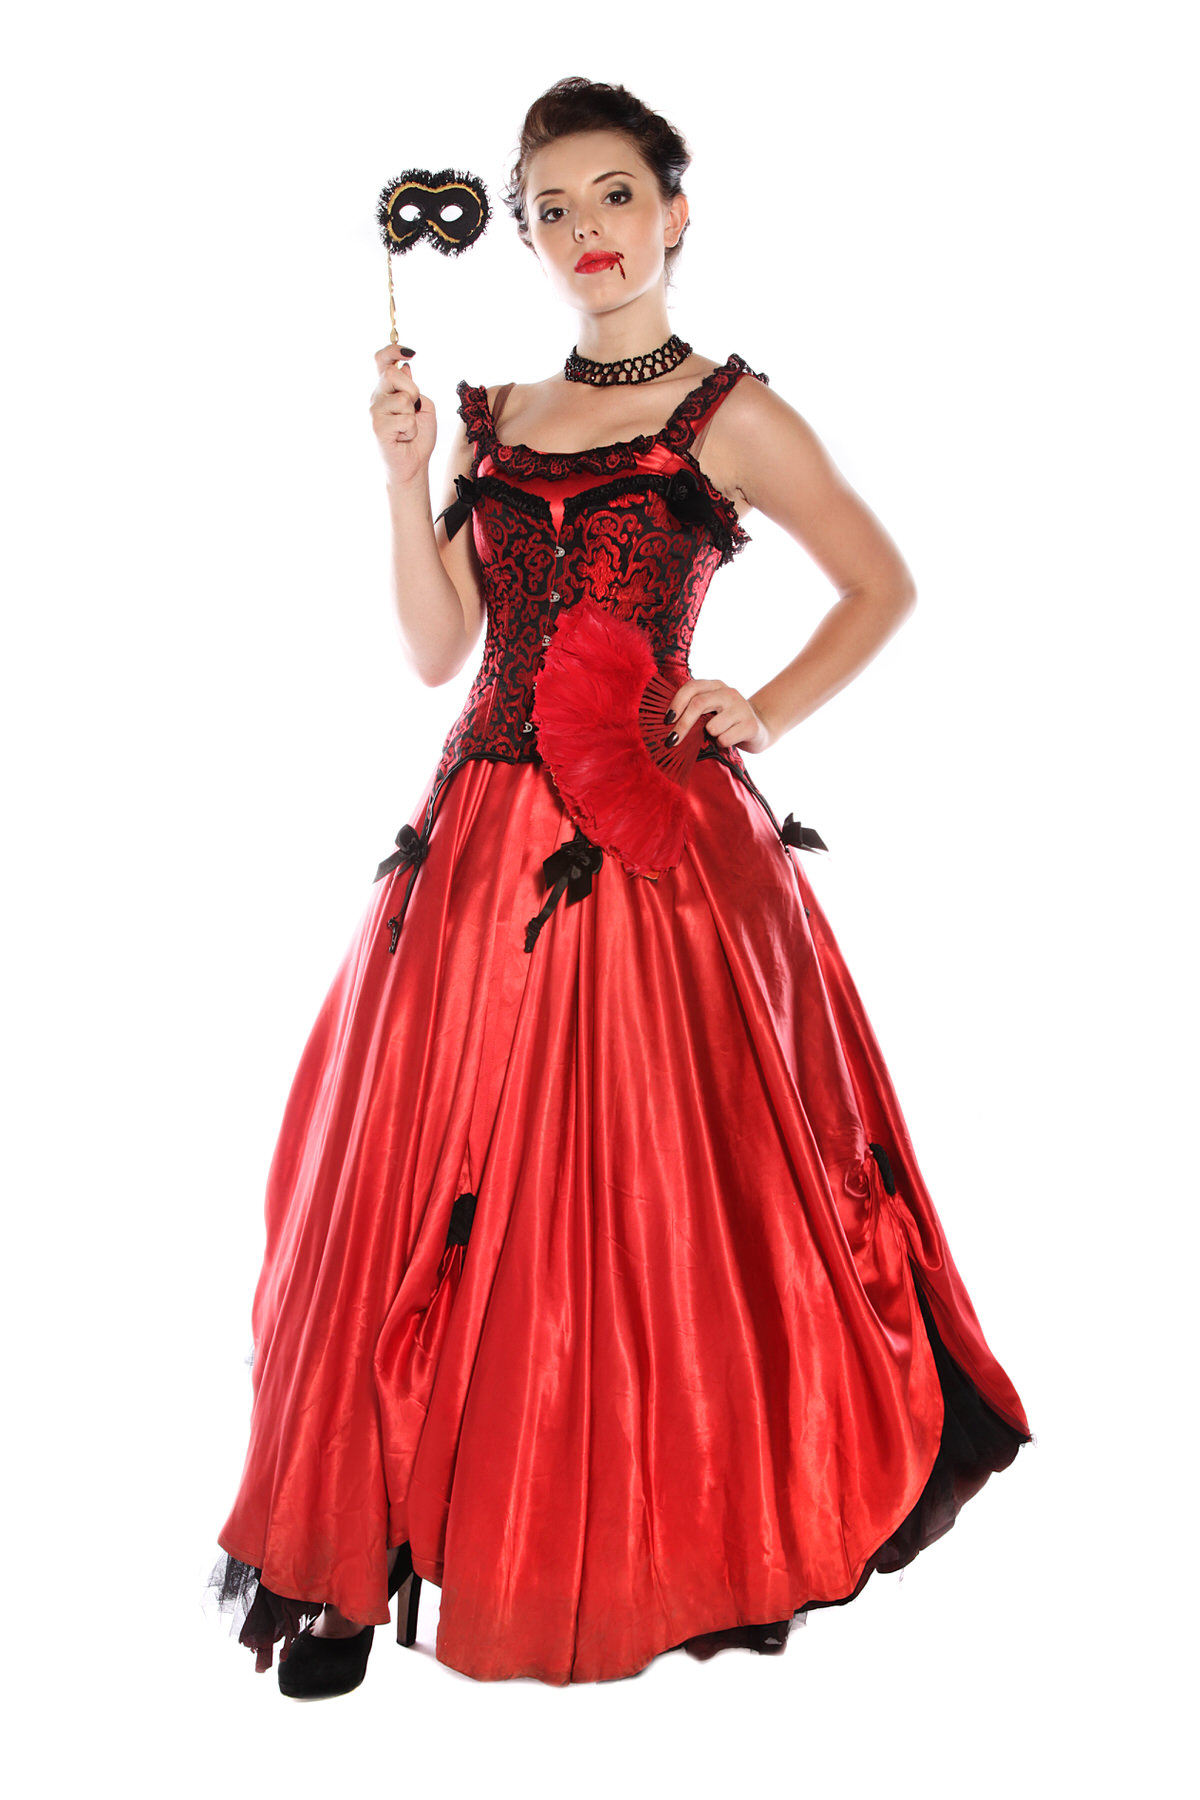 VAMPIRE PRINCESS LONG RED SATIN DRESS COSTUME